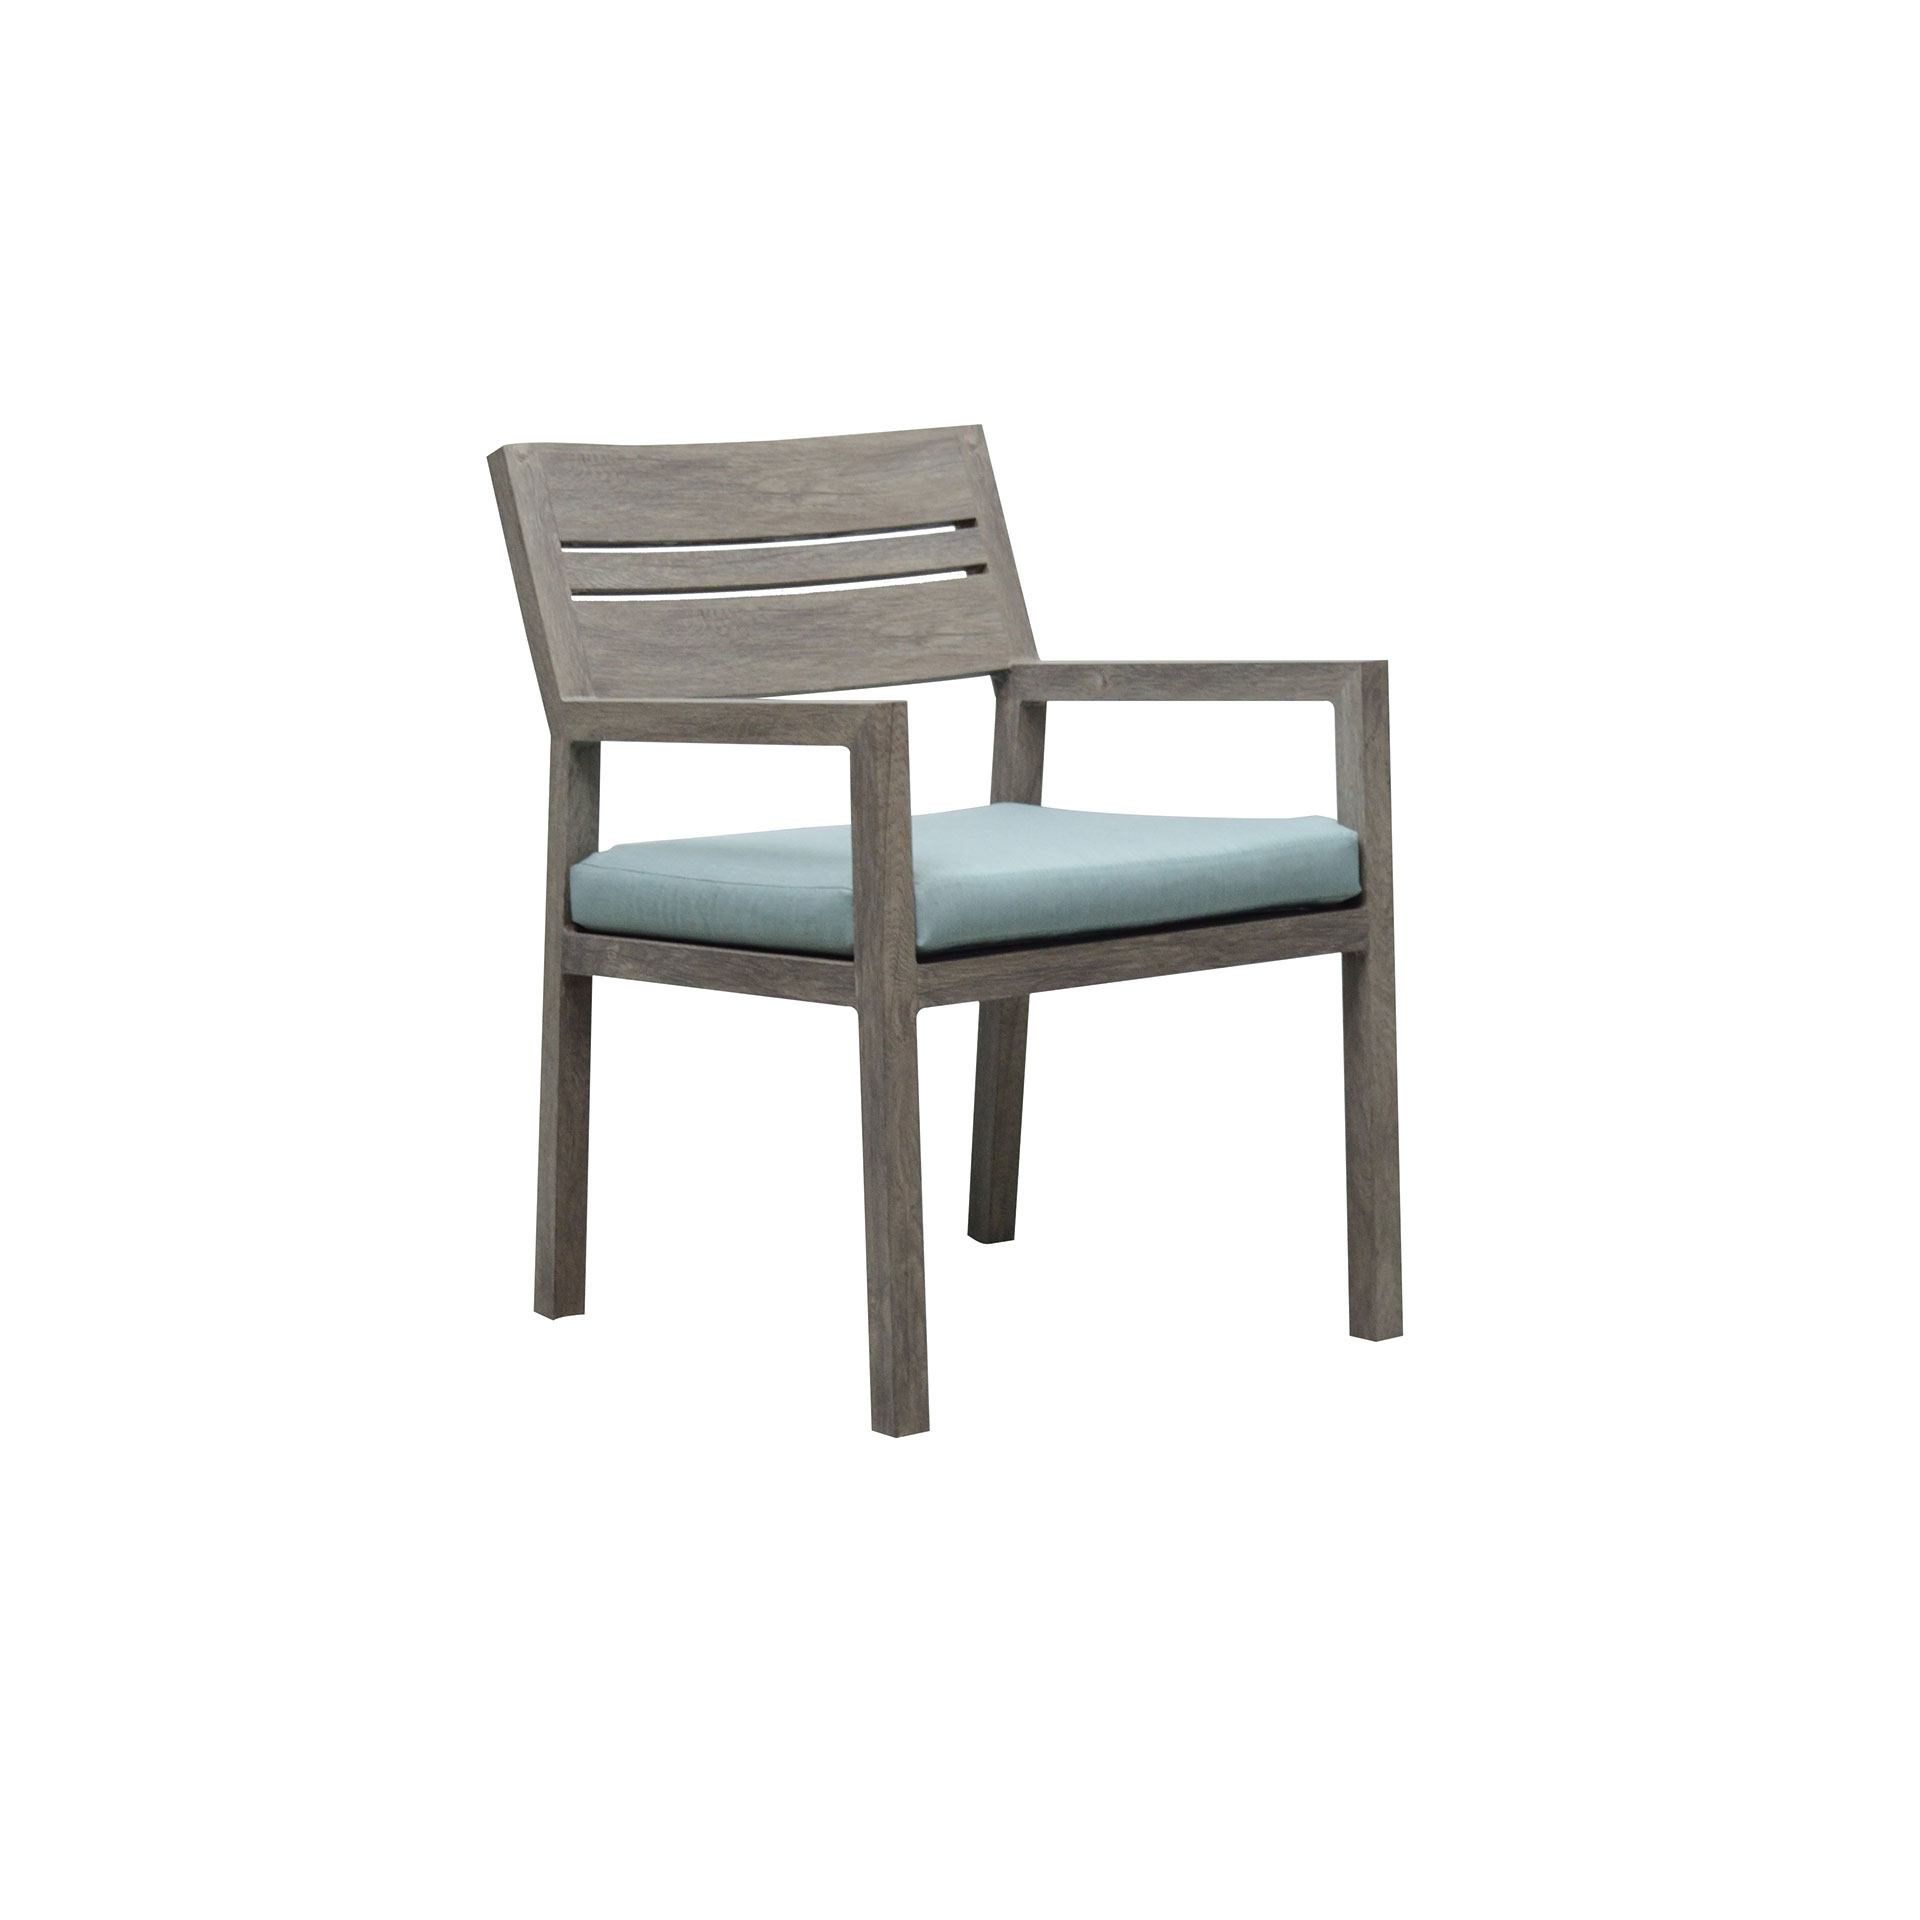 Patio Renaissance Aspen Dining Arm Chair Leisure Living